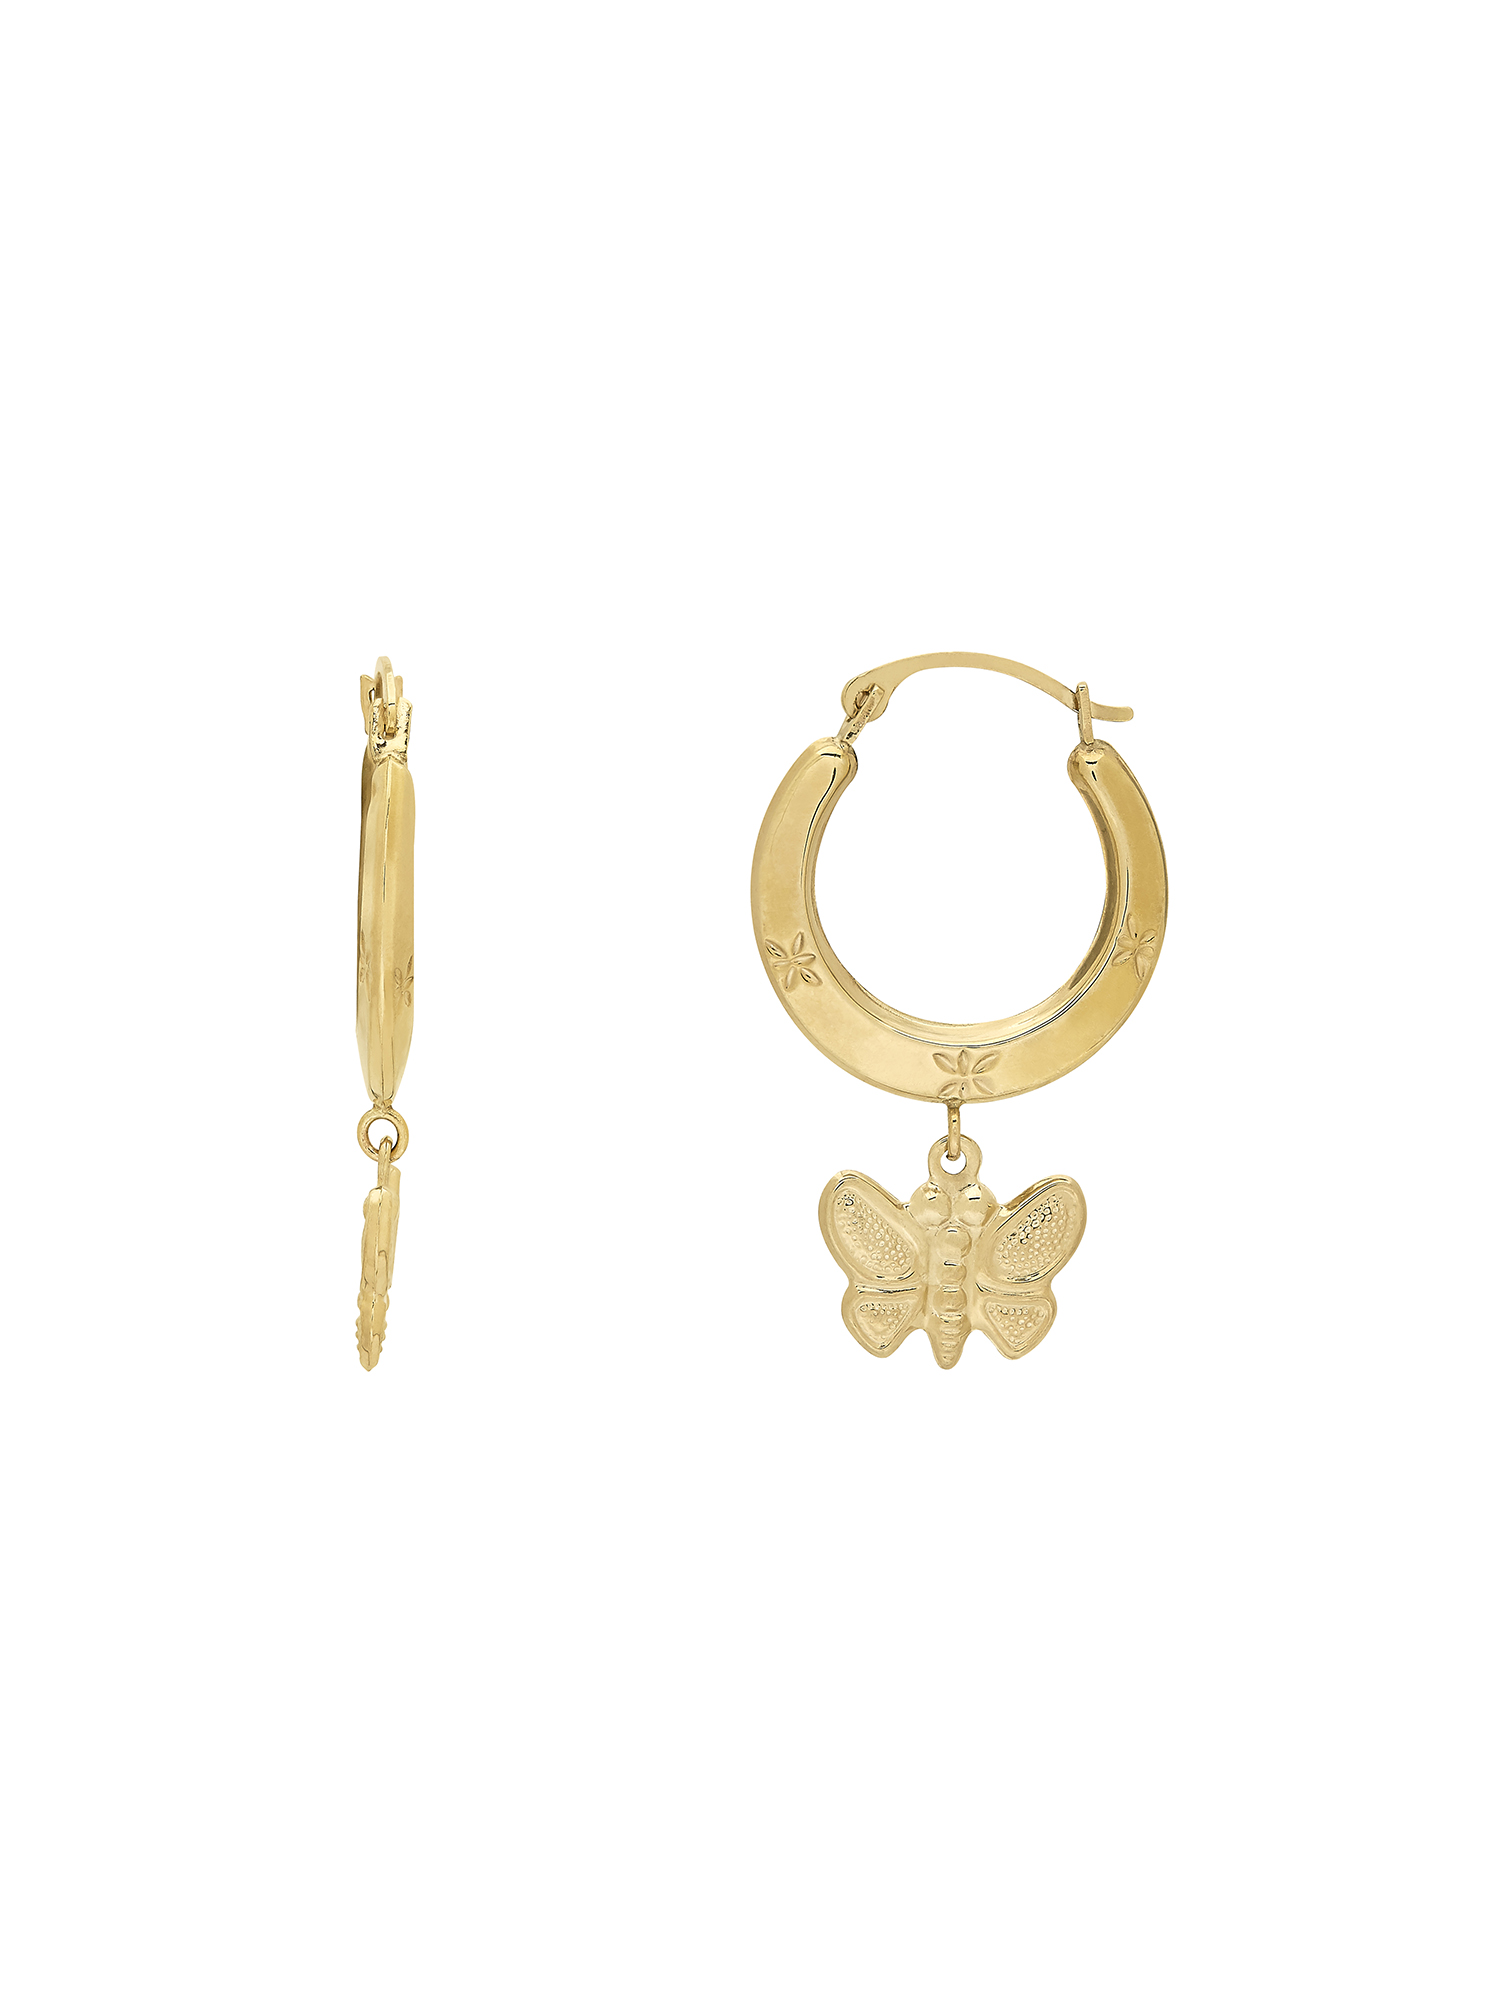 Simply Gold™ 10K Polished Diamond-Cut Hoop Earring w/Butterfly Dangle